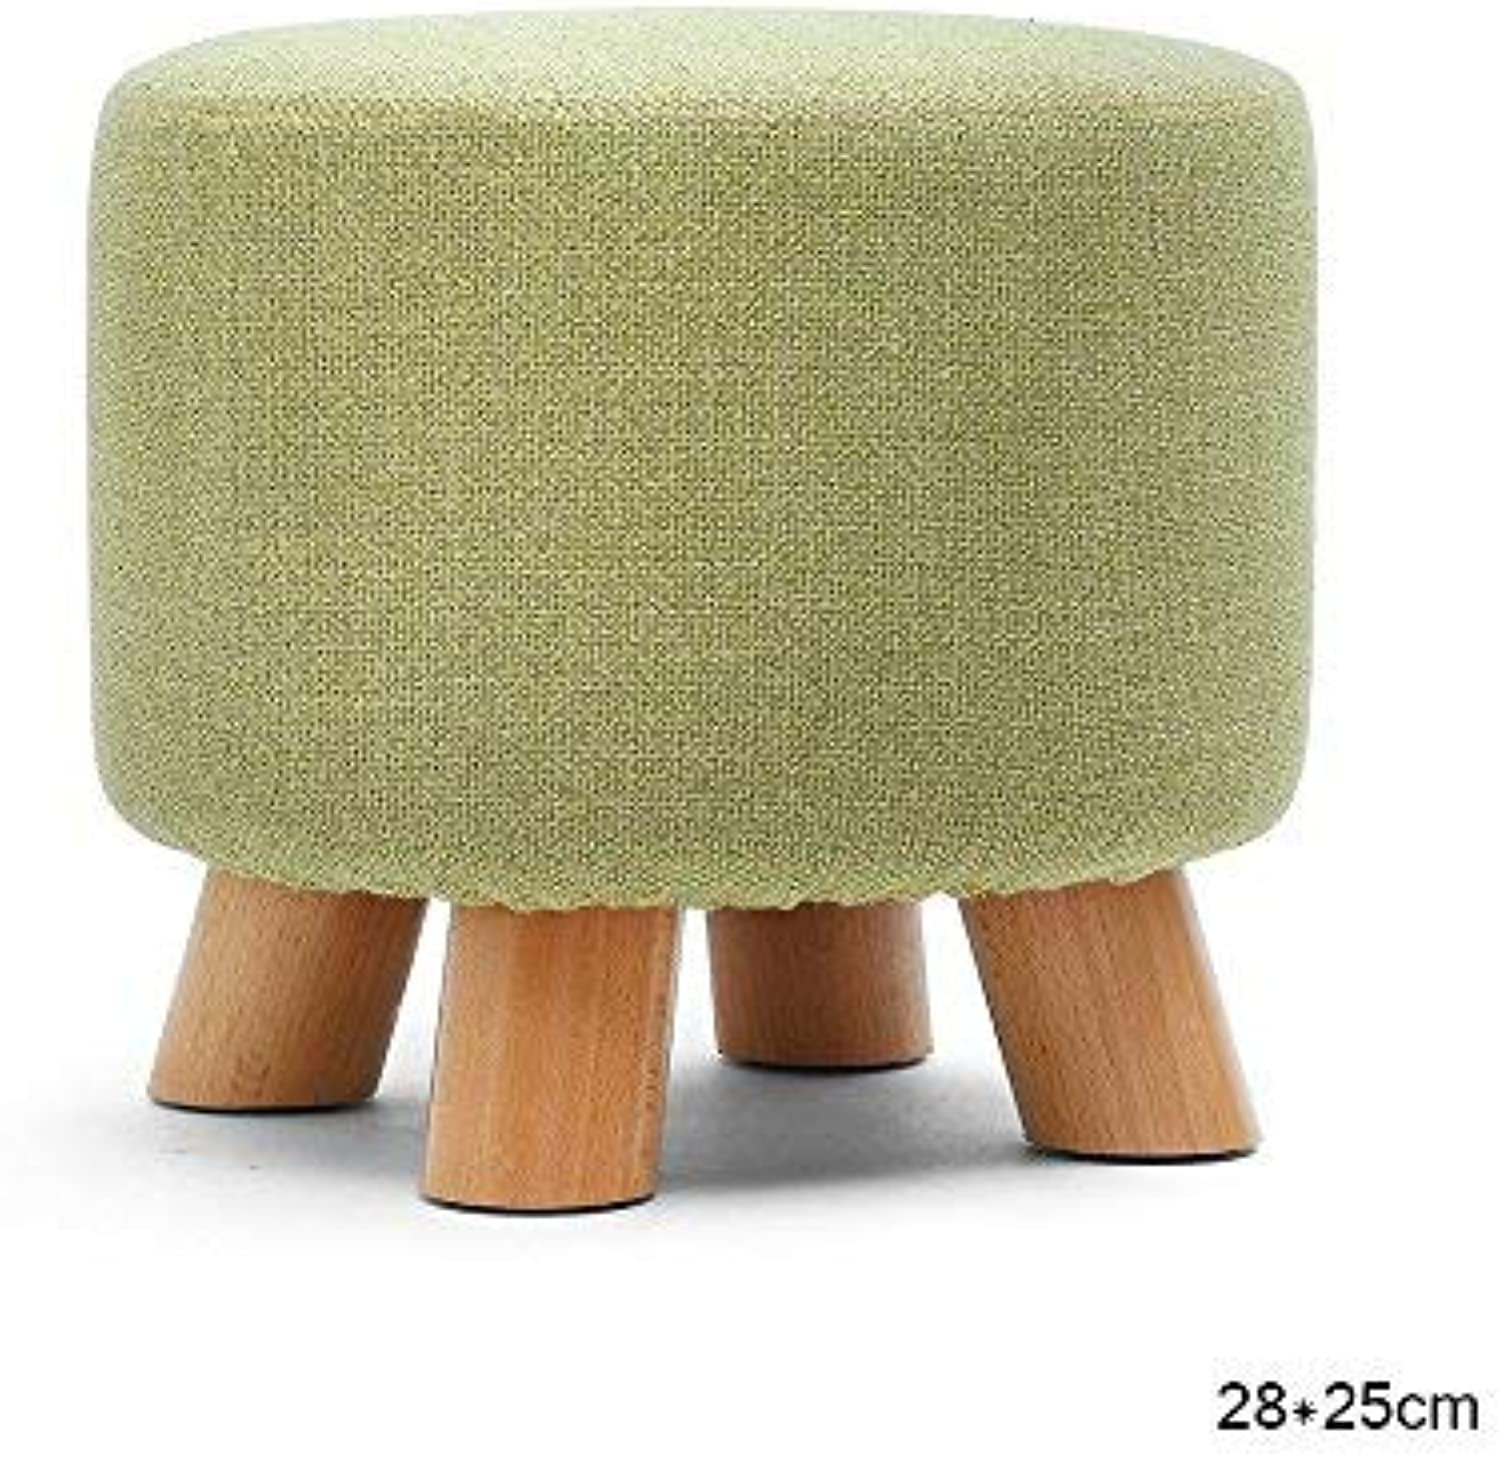 YZH Round 4 Wooden Leg Upholstered Footstool, Living Room Reception   Beauty Salon Barber Shop Fashion Chair Stool